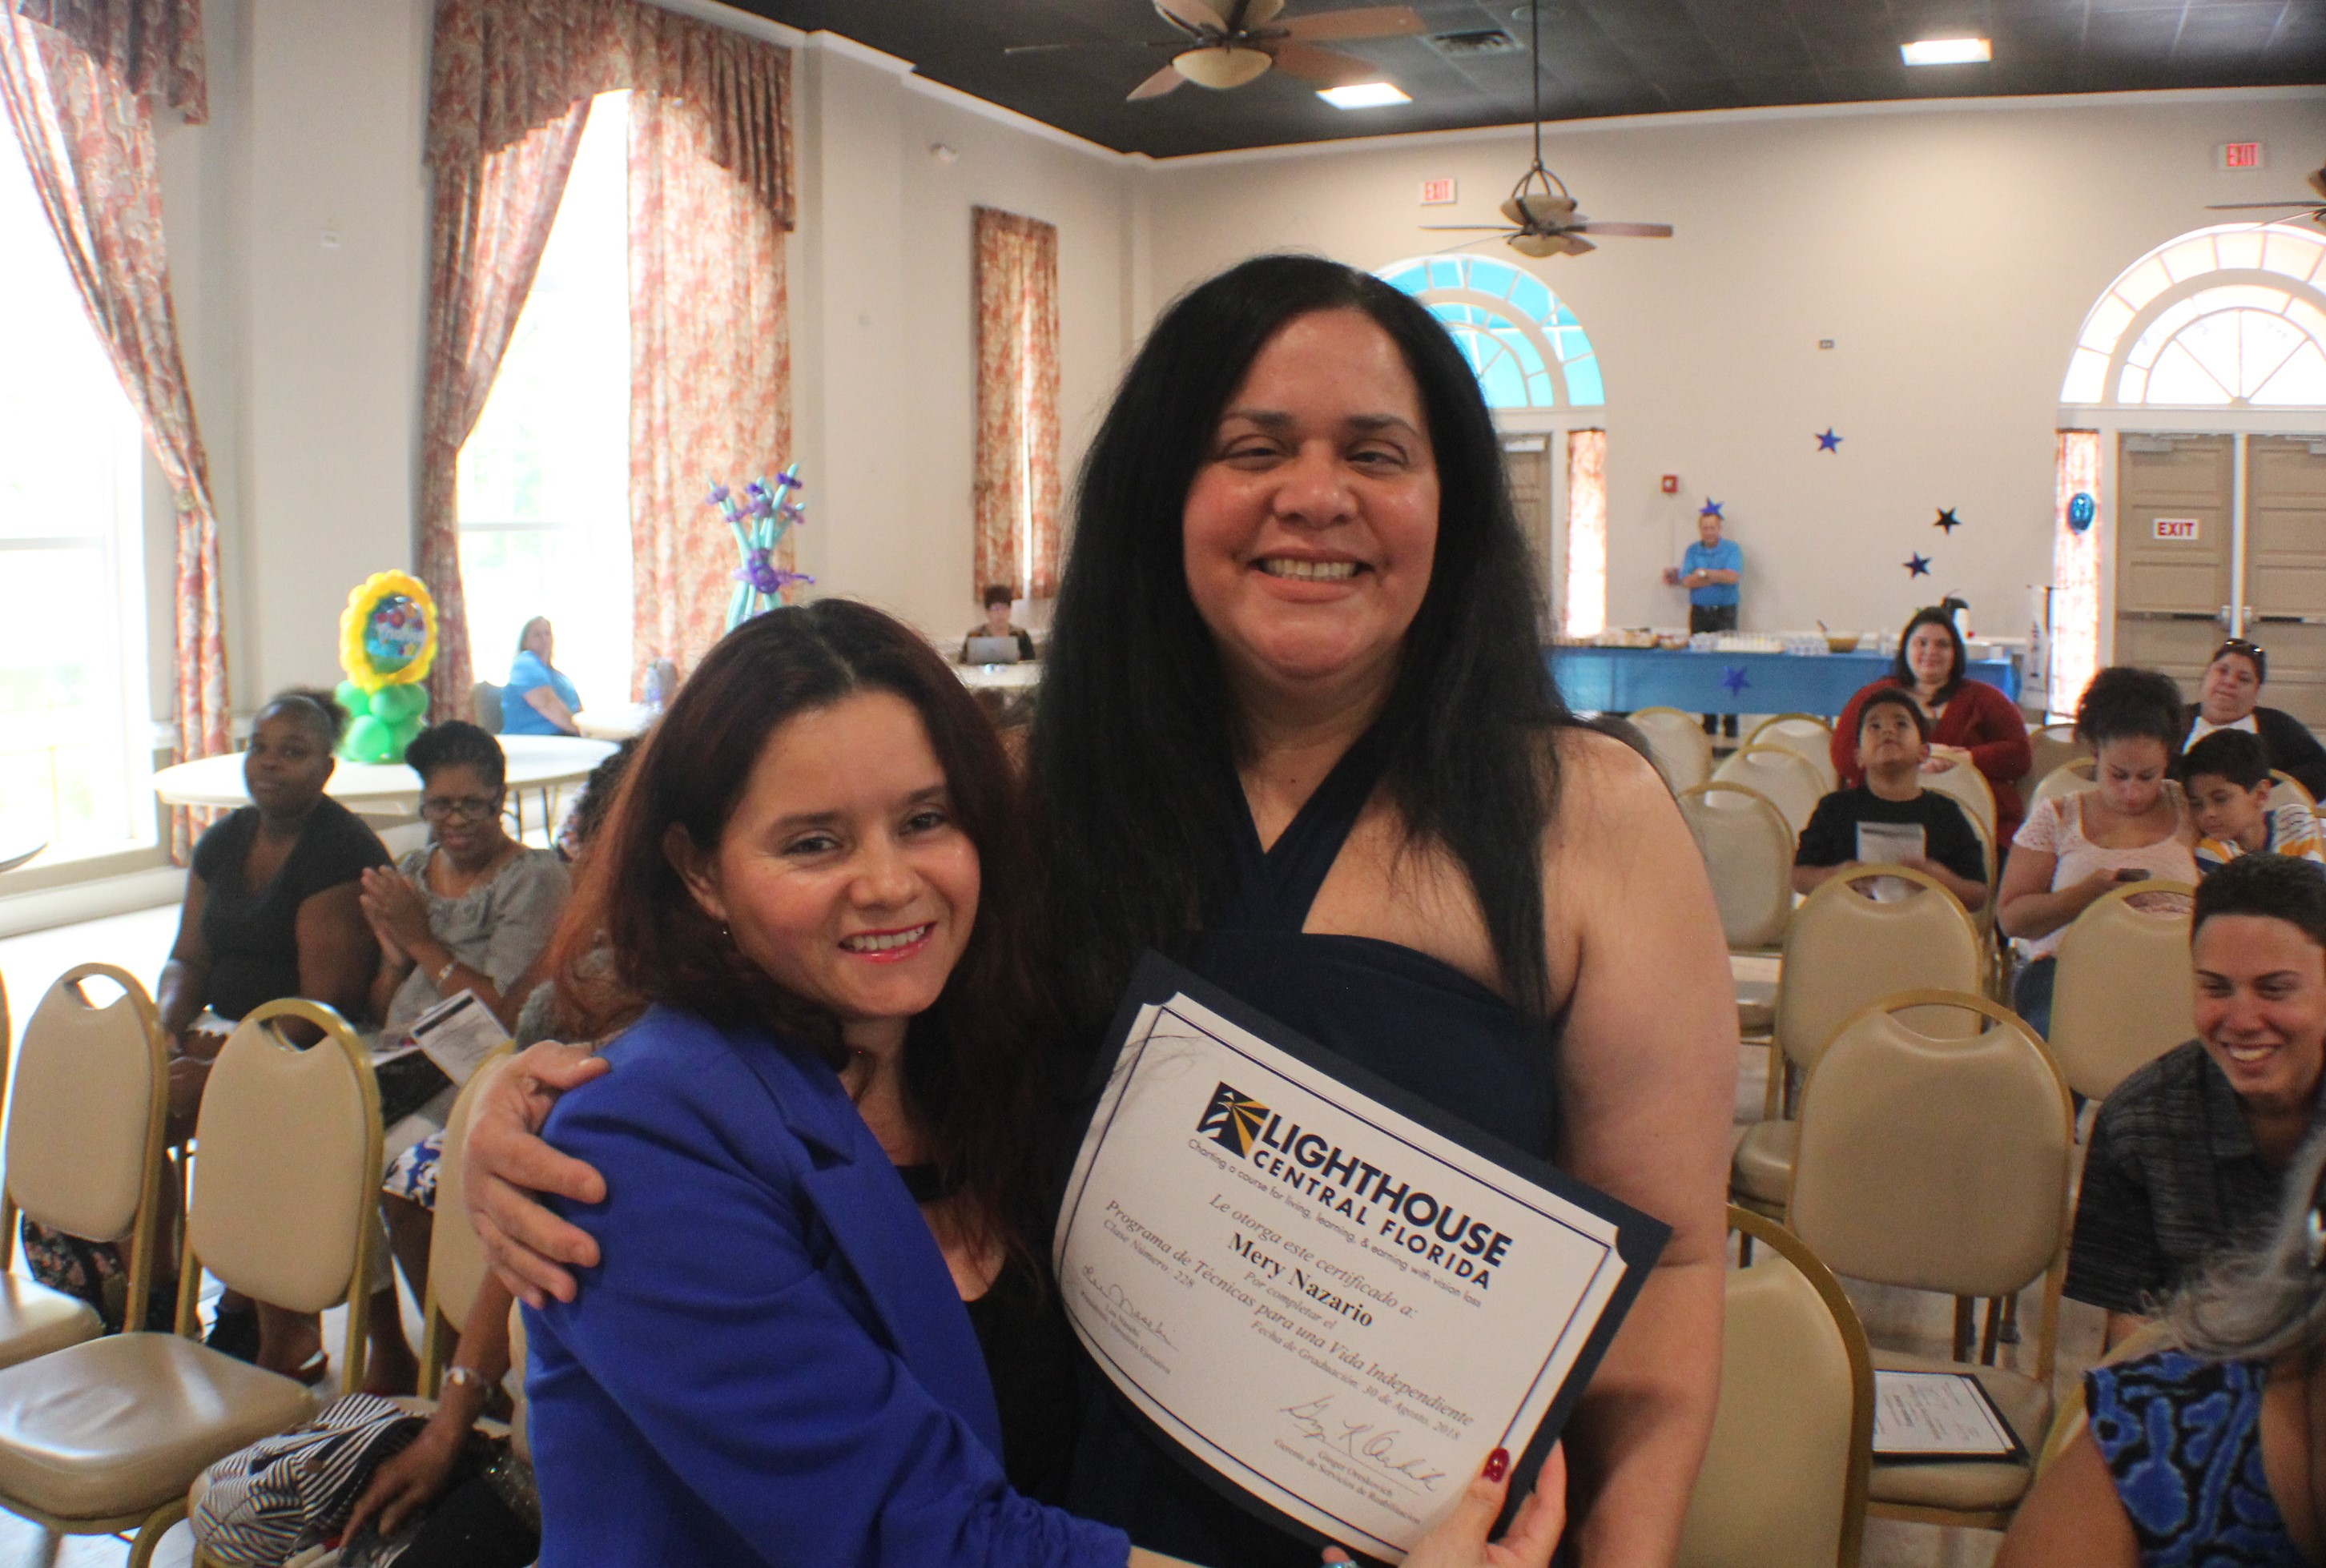 Lighthouse staffer, Maria [left] embraces graduate from recent Foundations of Daily Living course